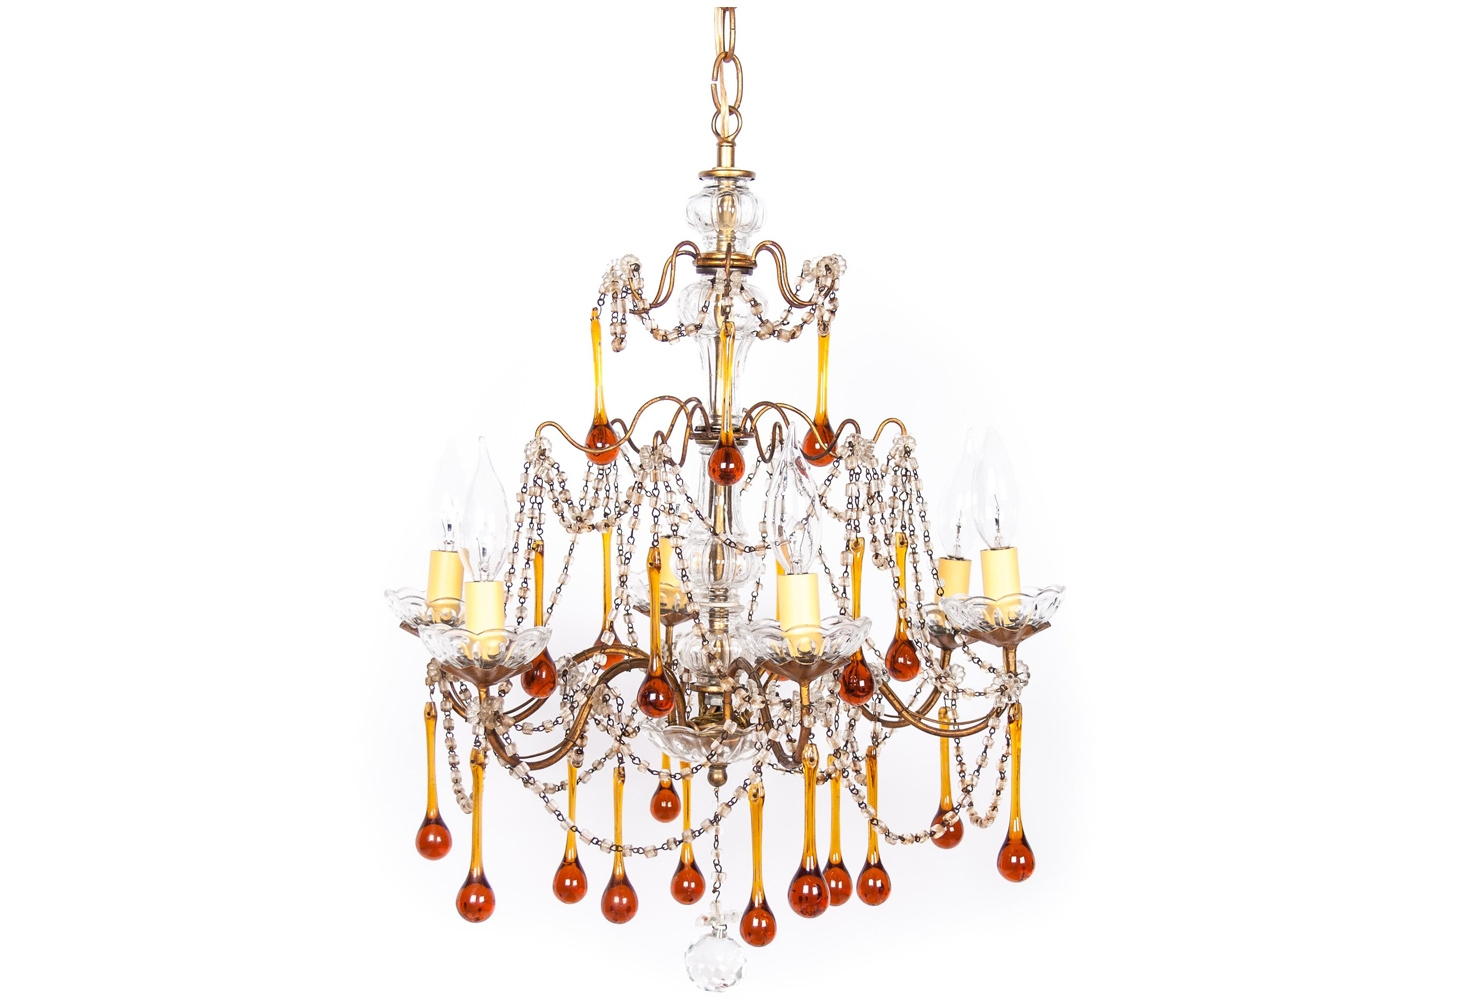 The Italian Chandelier Pertaining To Vintage Italian Chandelier (#8 of 12)